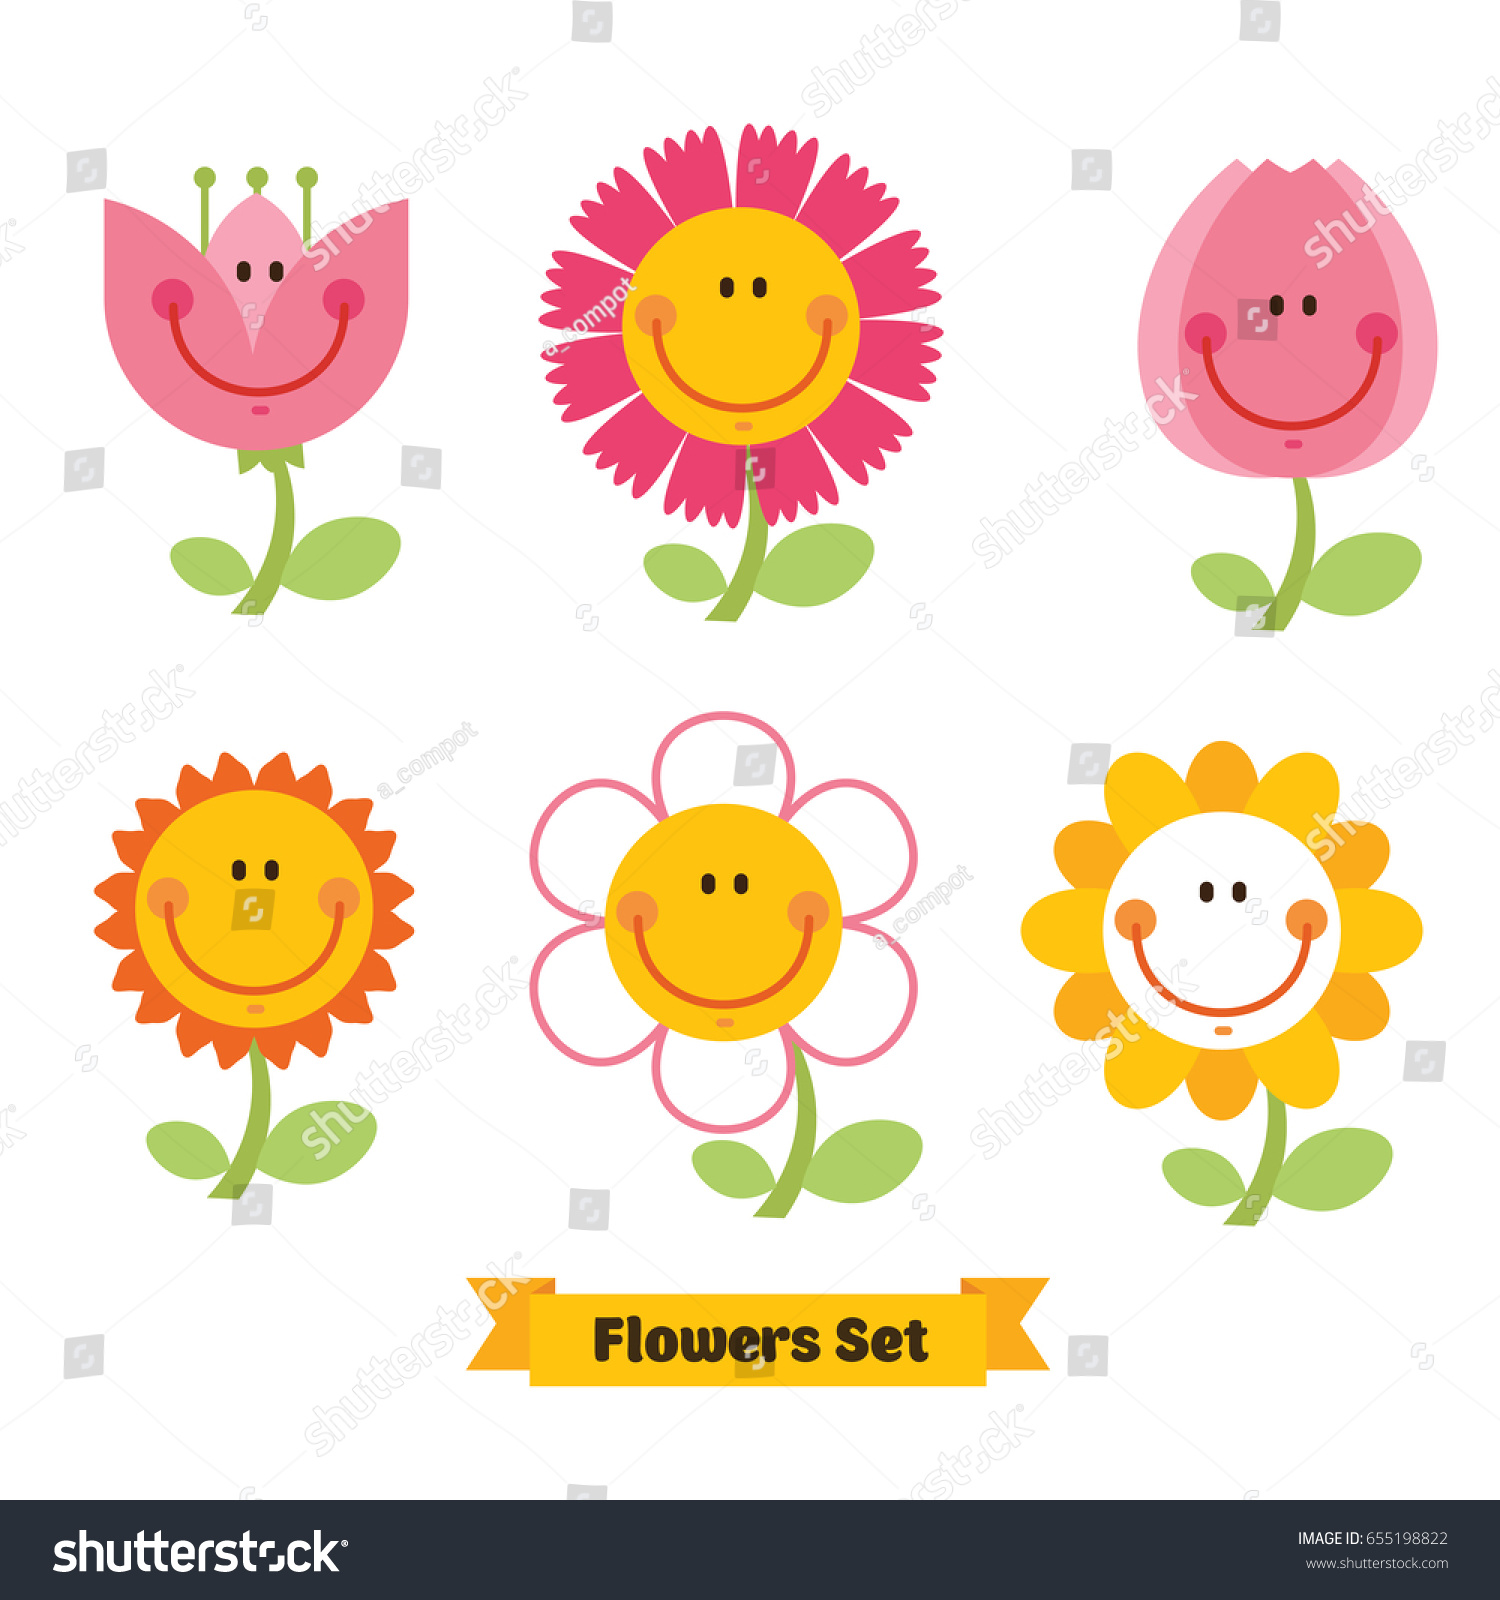 Cute flowers emoticon set funny smiley stock vector royalty free cute flowers emoticon set funny smiley flowers happy doodles for your design bright izmirmasajfo